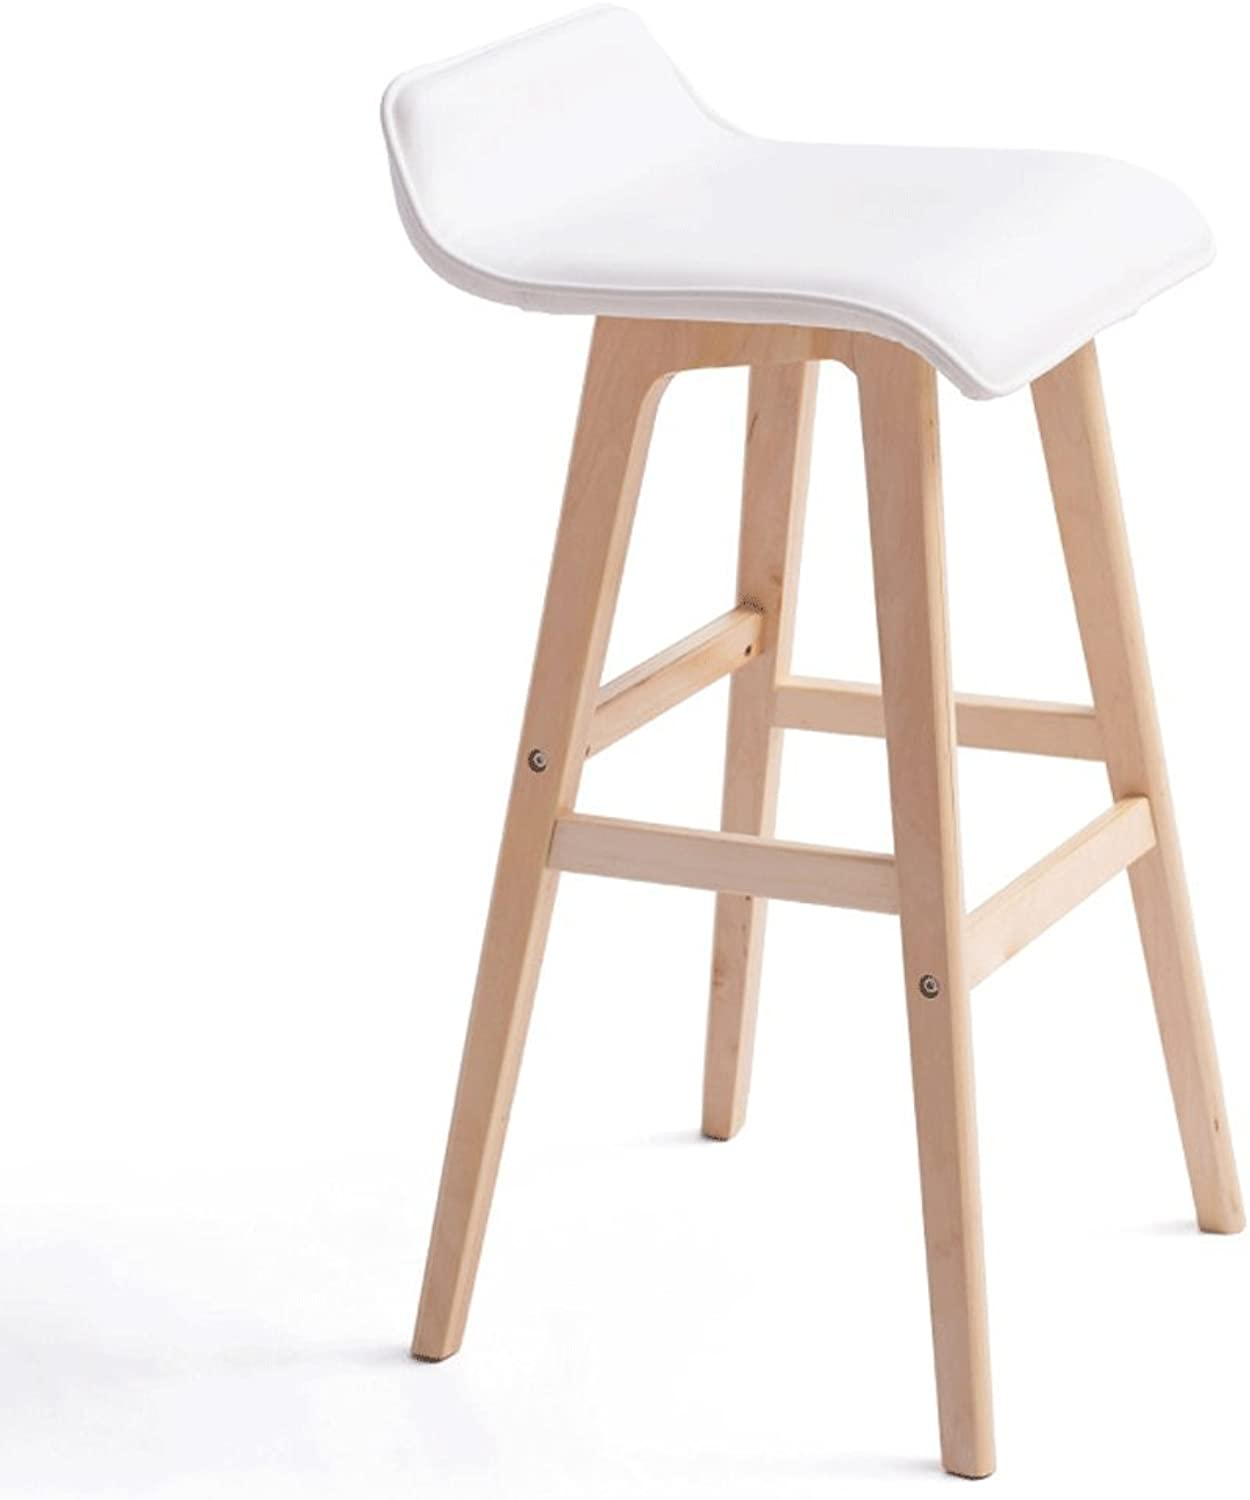 Barstool Solid Wood Chair High Stool Restaurant Cafe Leisure Chair Bar Chair (color   K, Size   H-65cm)